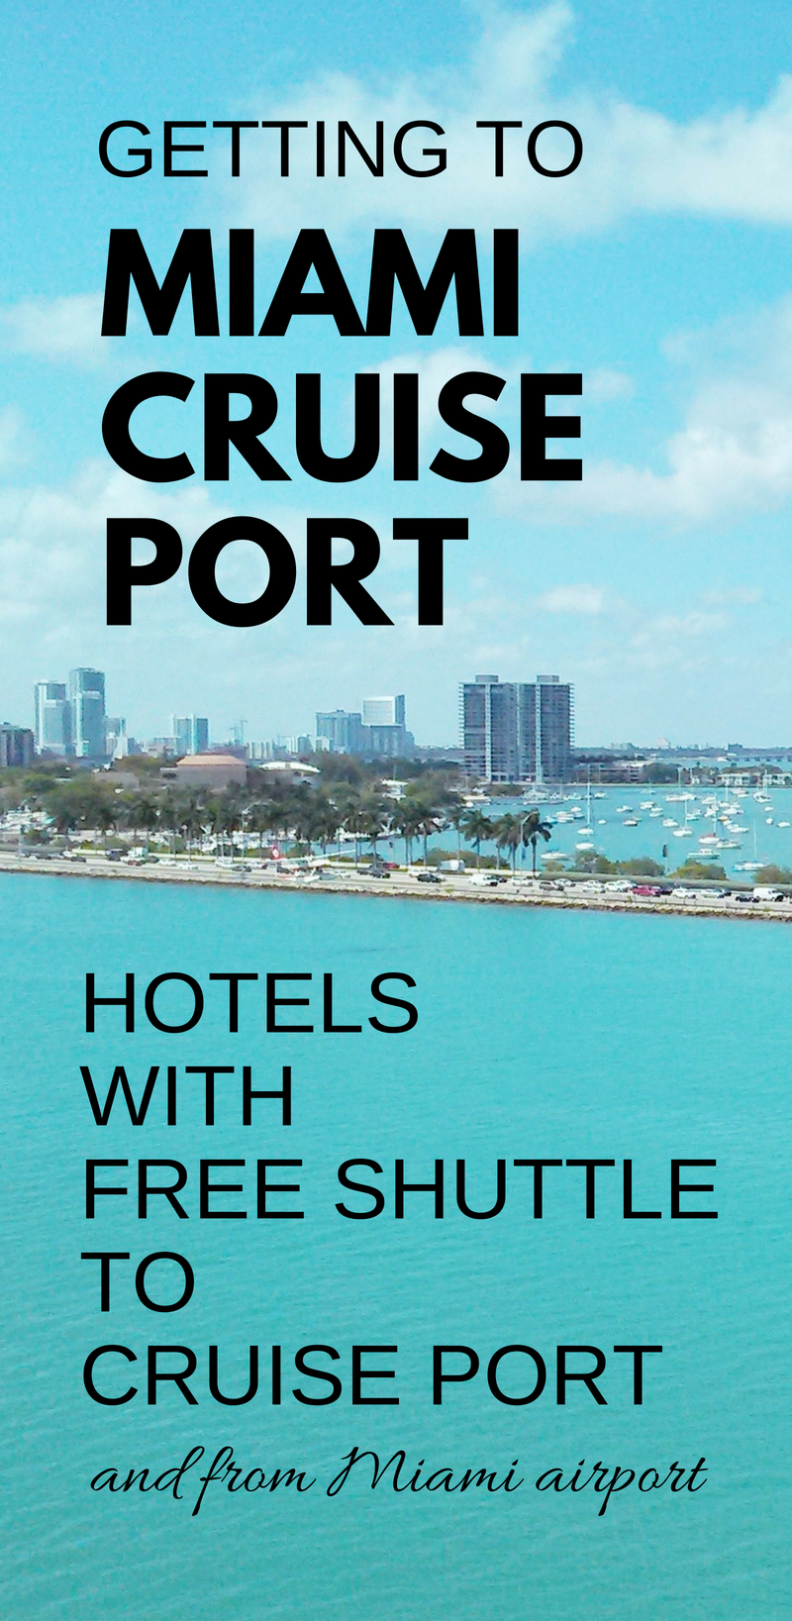 miami hotels with free shuttle to cruise port: map + list